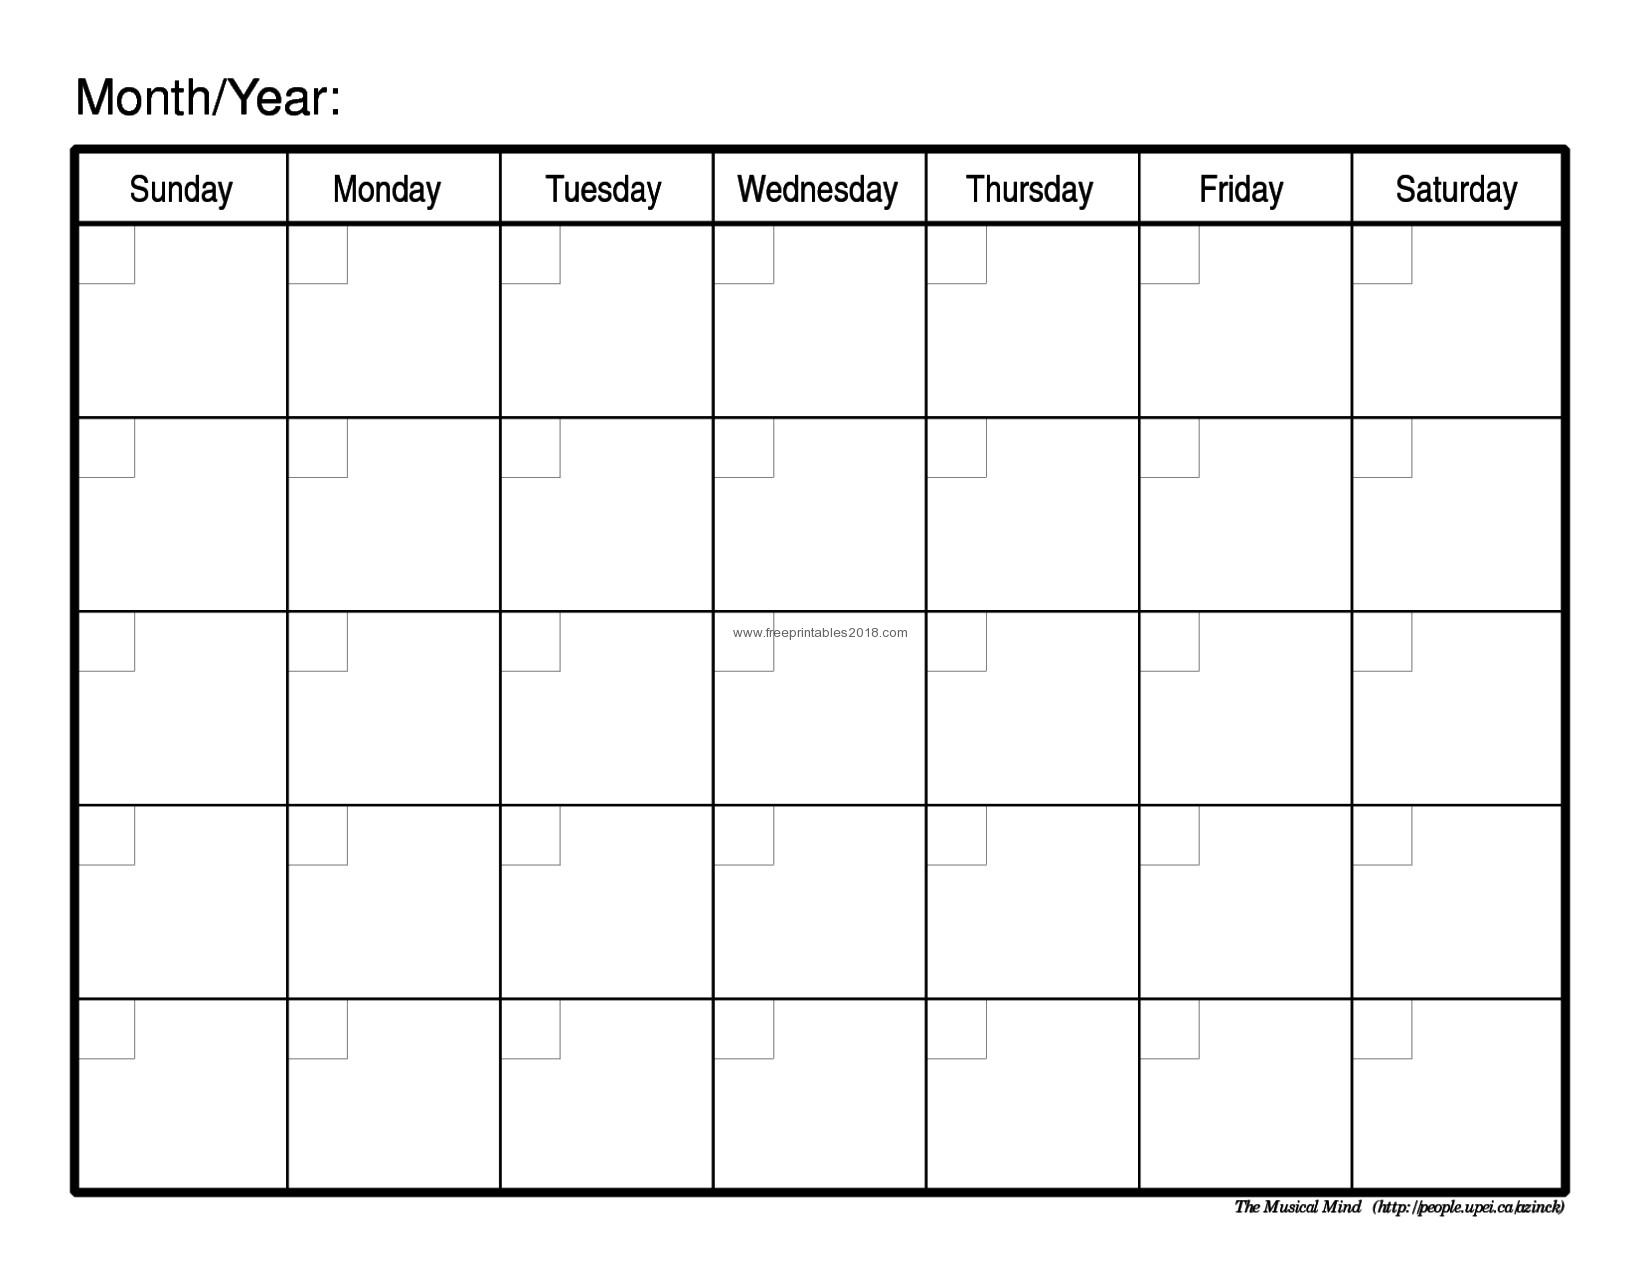 Free Printable Calendar Blank Free Printable Blank Calendar inside Free Downloadable Monthly Calendar Templates